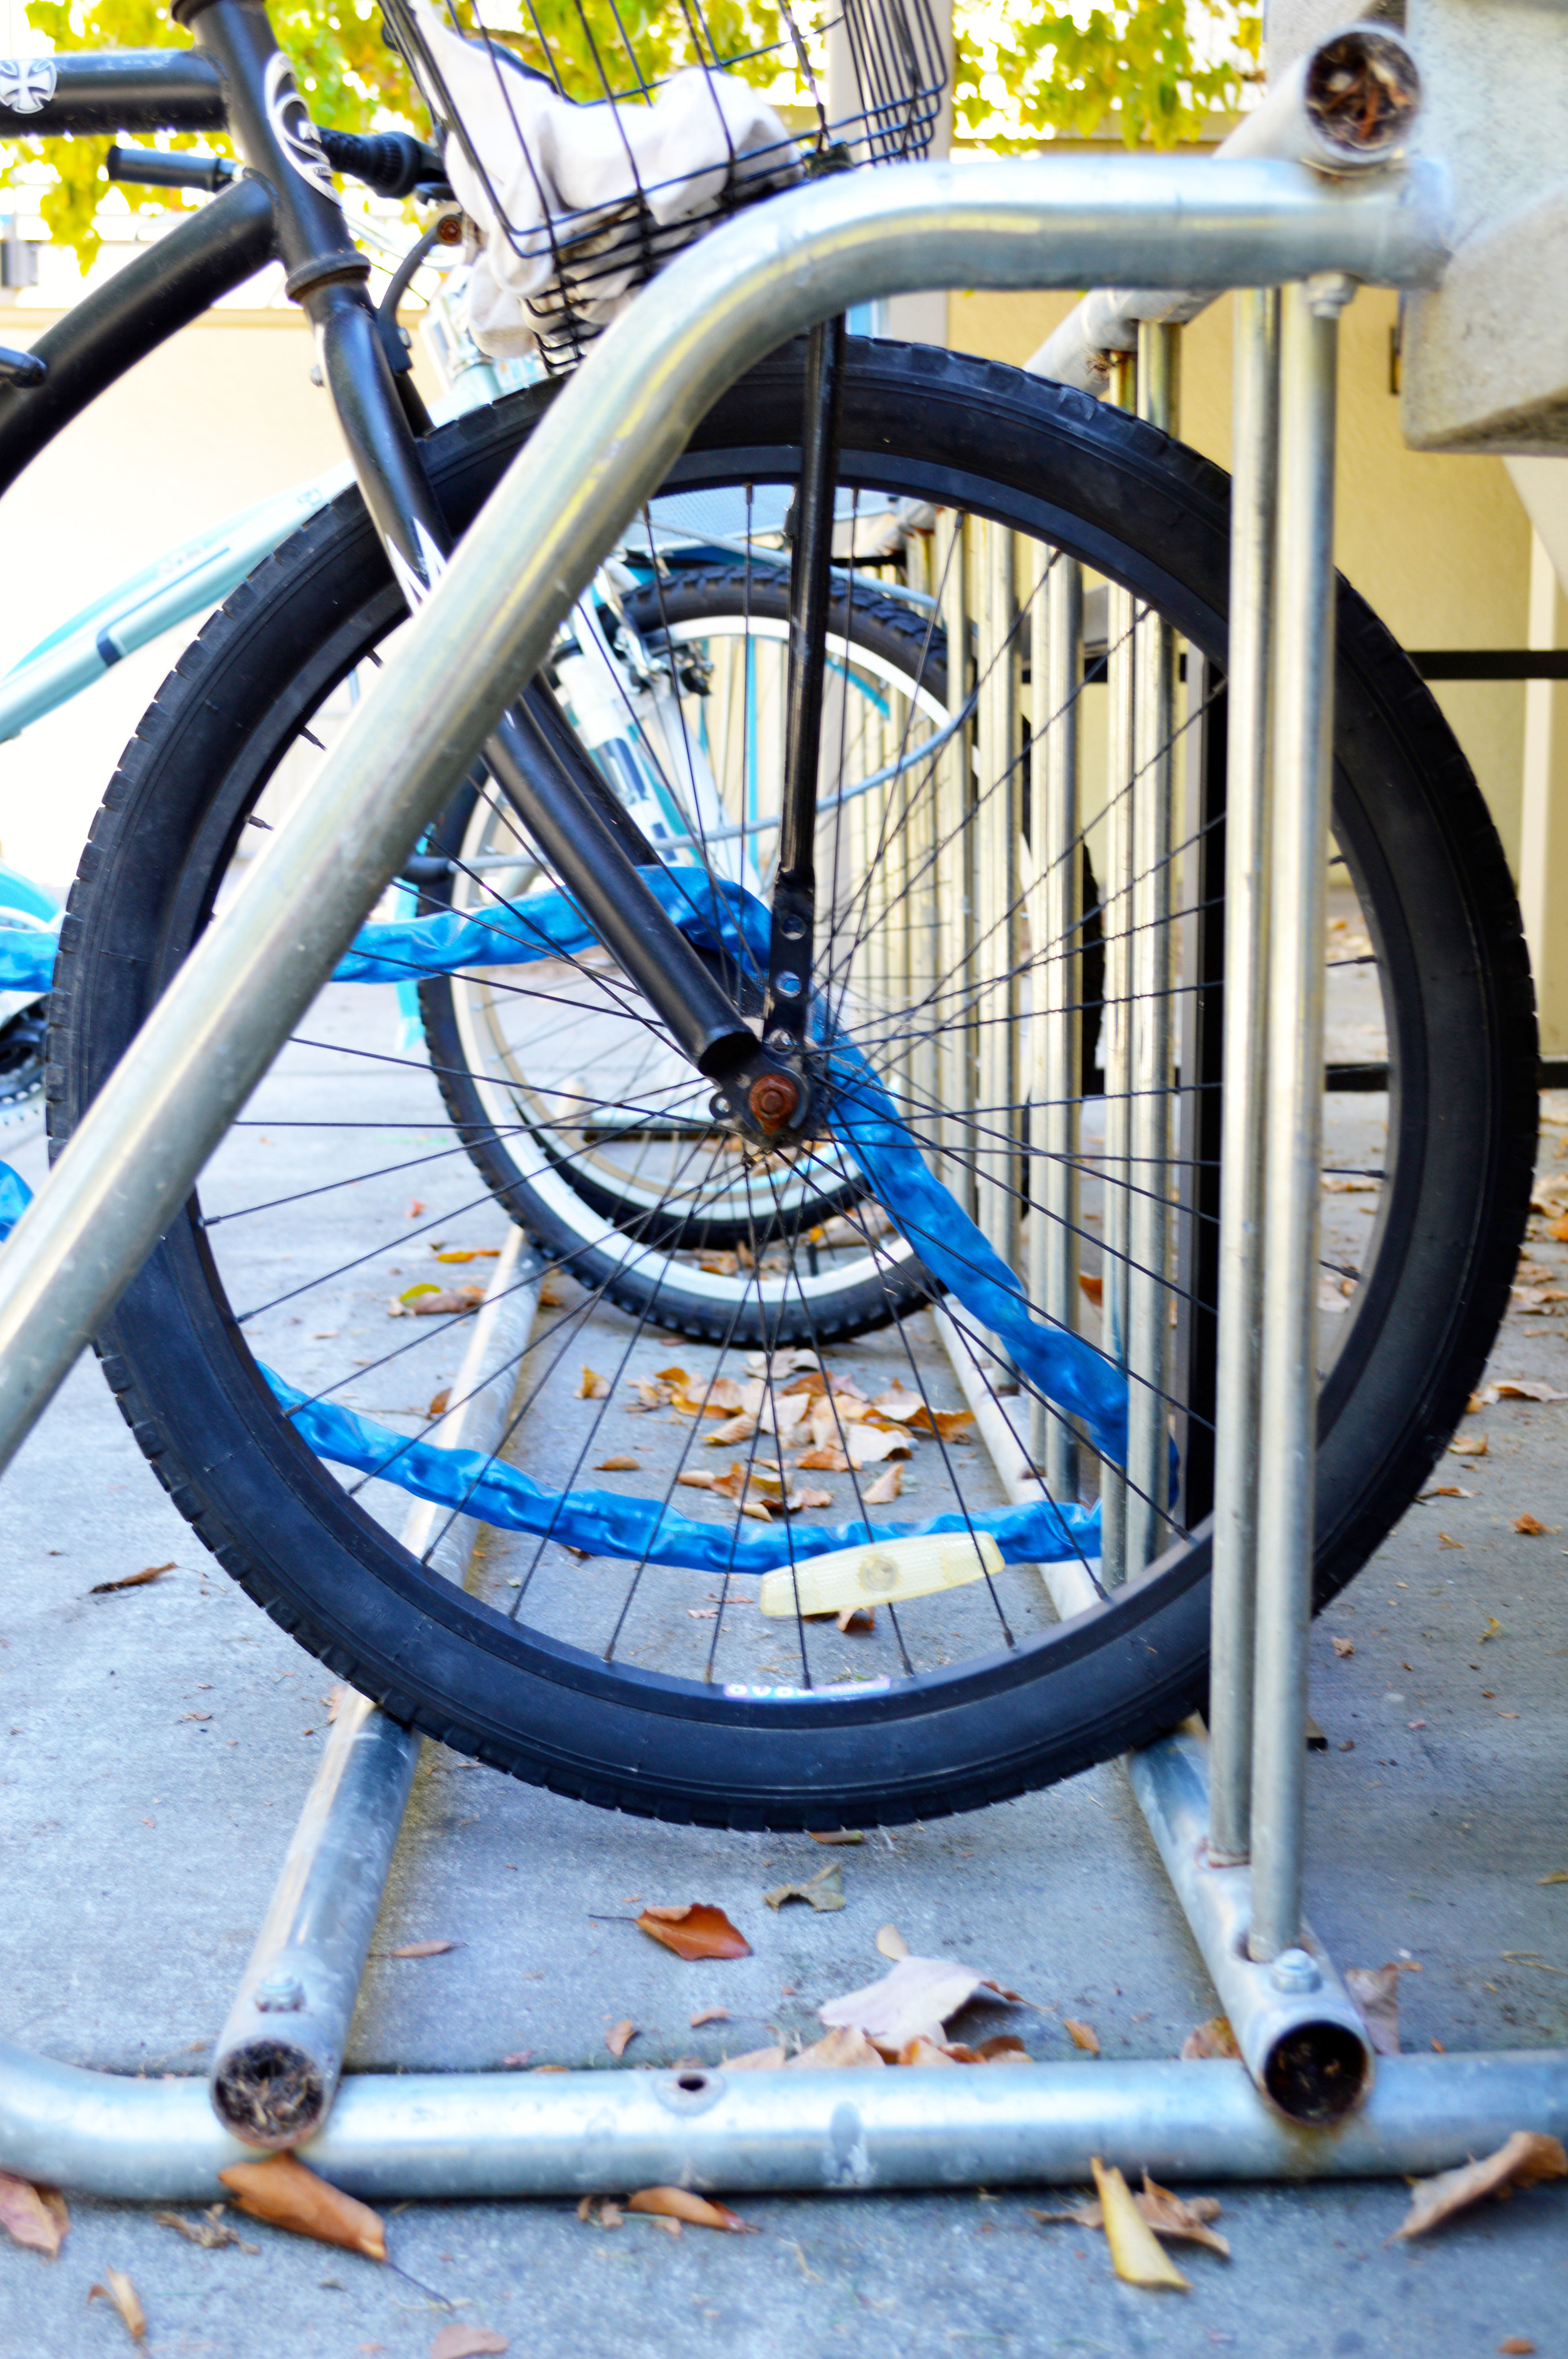 The start of a new semester brings a wave a bike thefts and car break-ins.